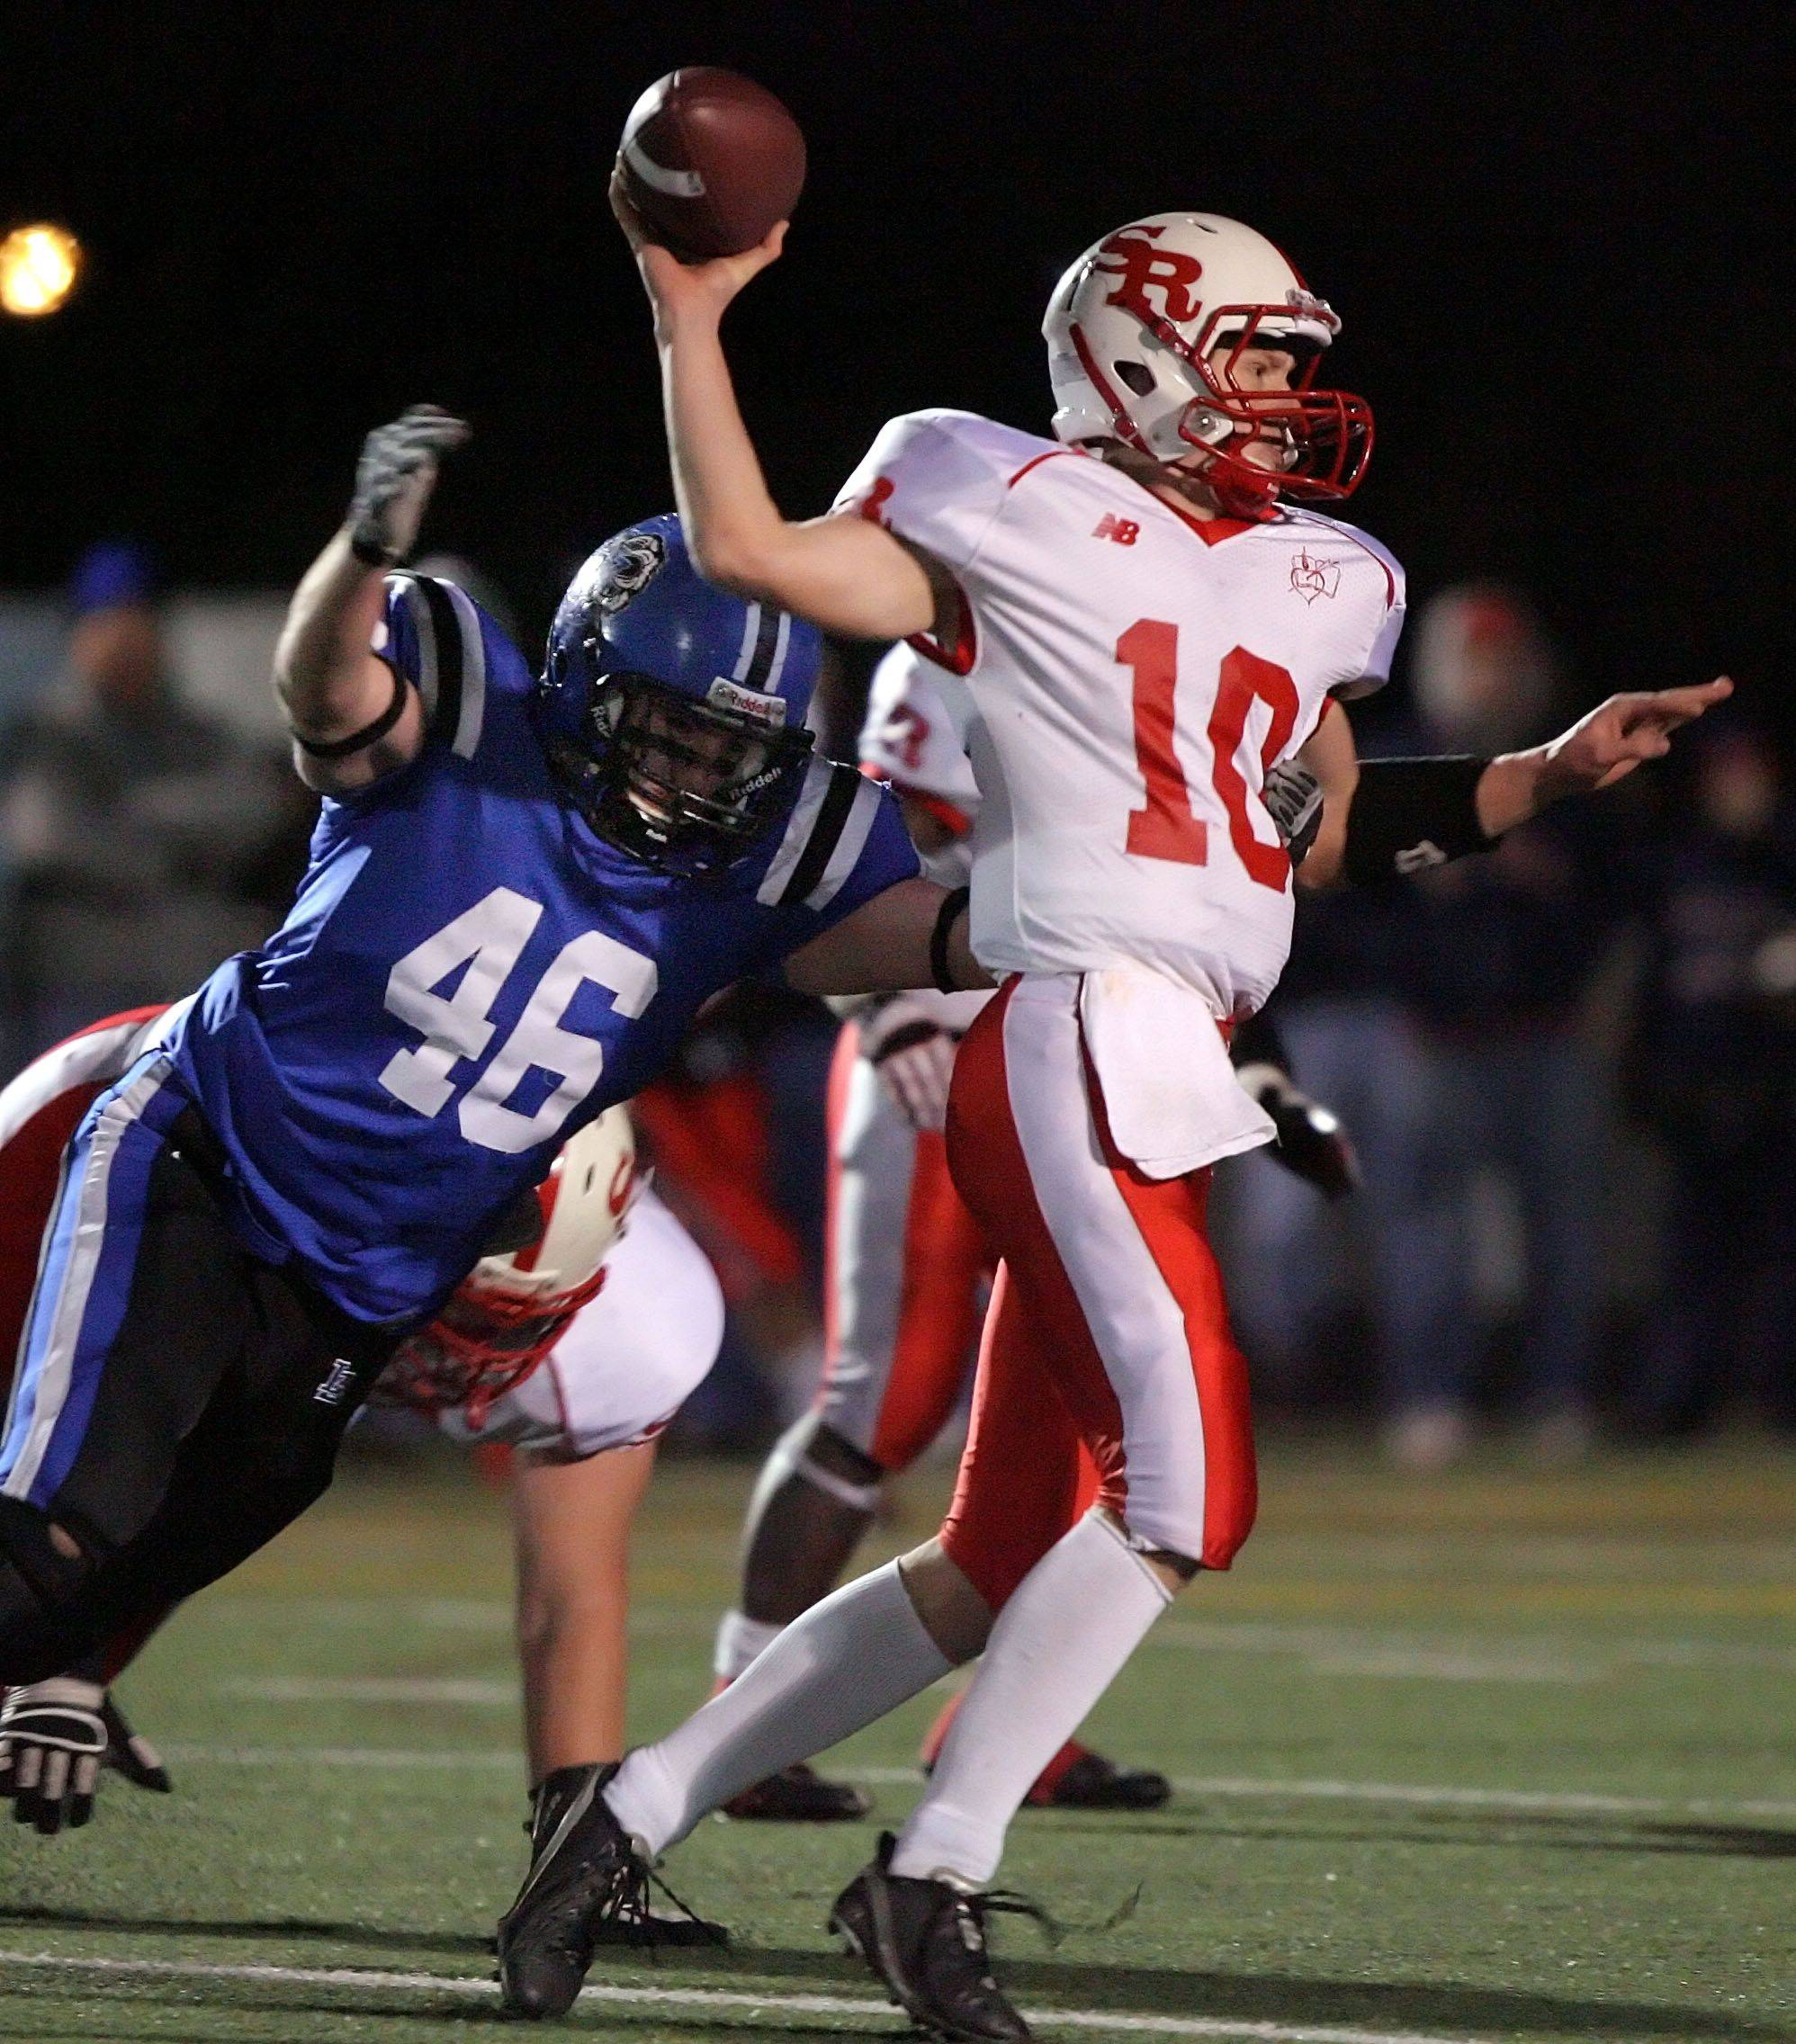 Lake Zurich's Mark Tabaka bears down on St. Rita's Brandon Johnson 21-0 during the IHSA Class 7A football semi final game Saturday night at Lake Zurich High School.